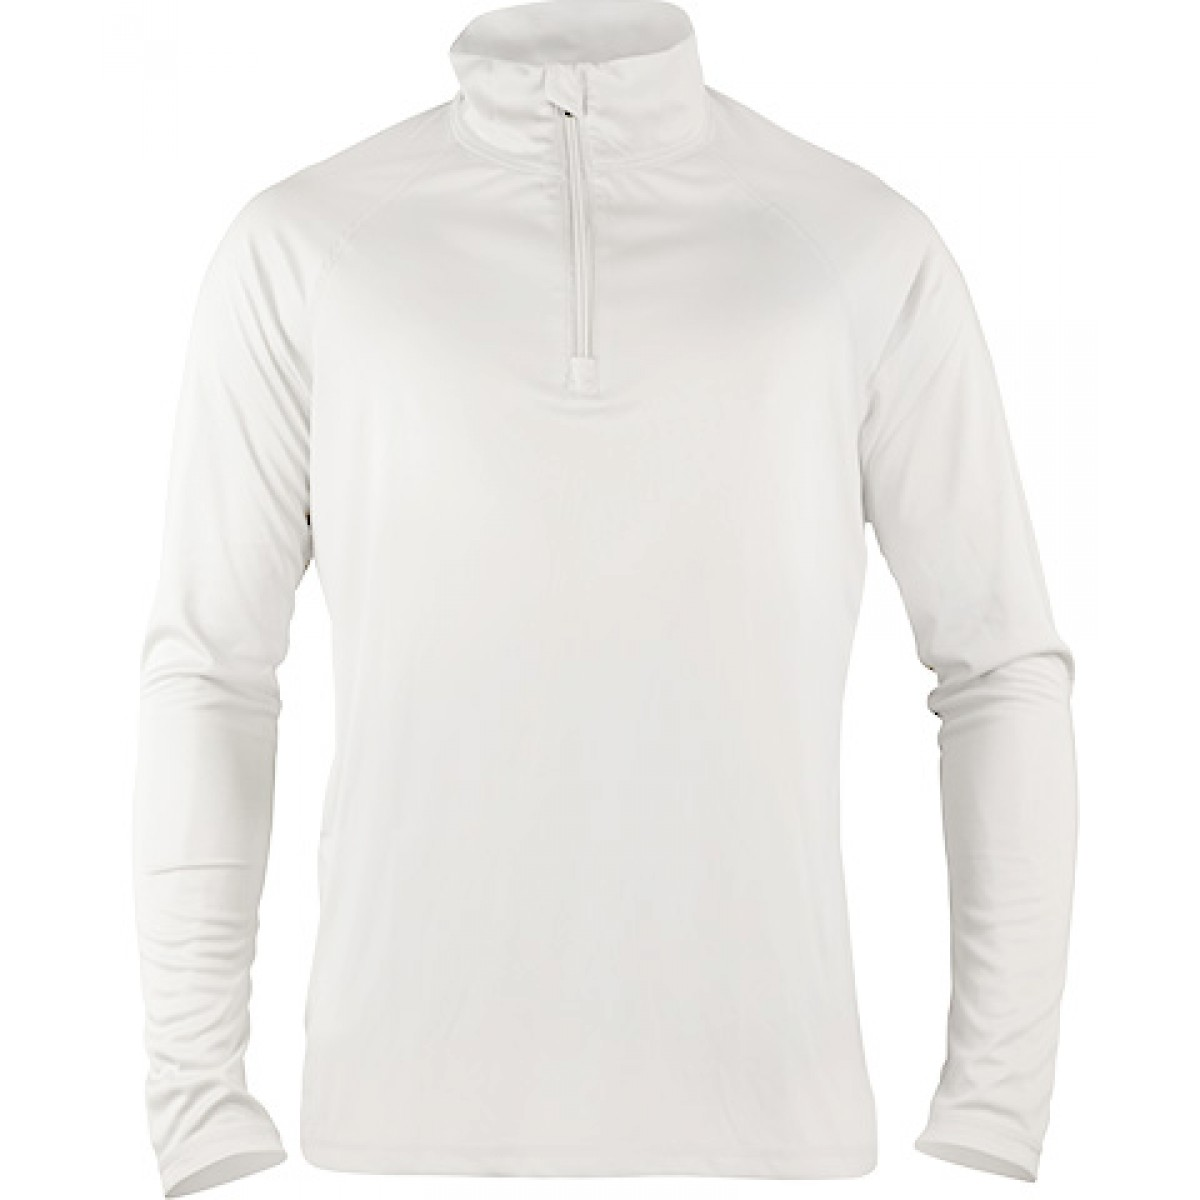 Quarter-Zip Lightweight Pullover-White-YS